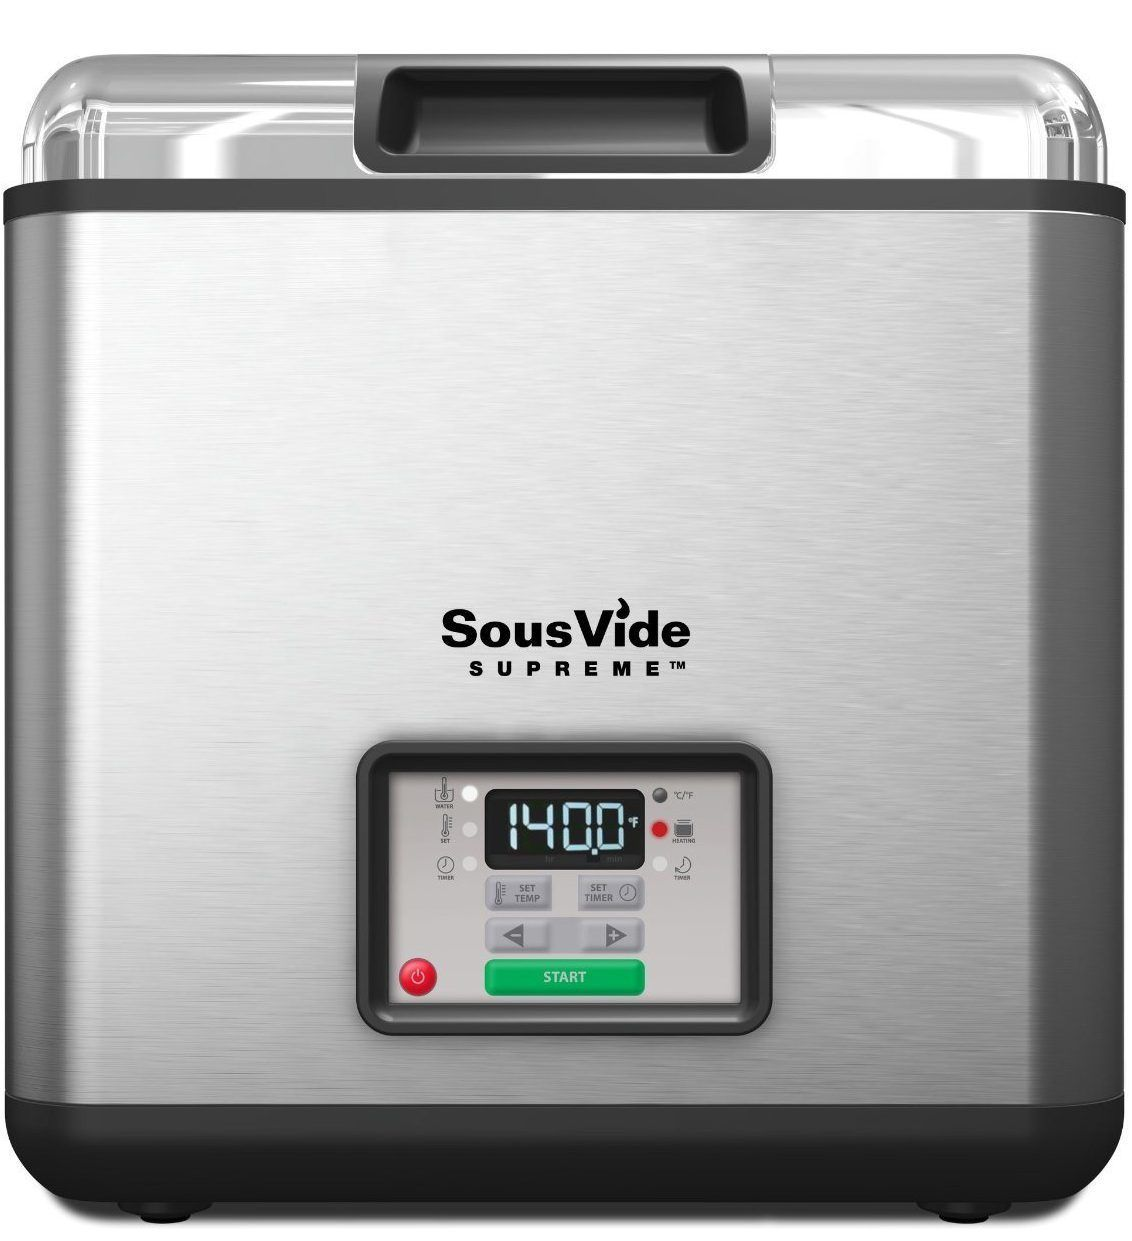 best sous vide supreme/chef water oven